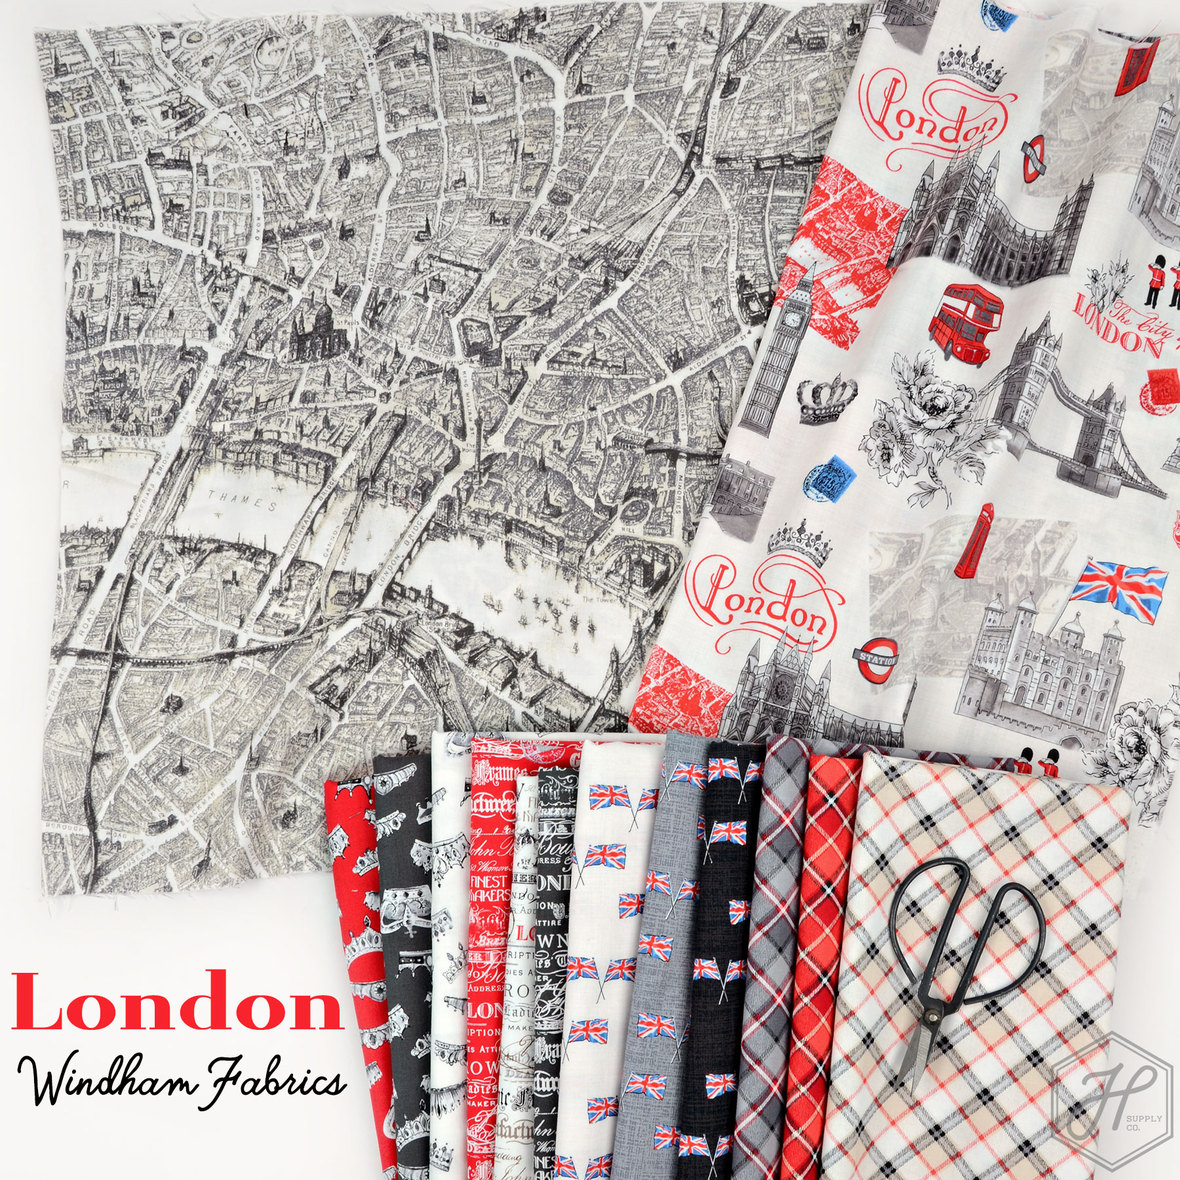 London-Fabric-Poster-Windham-Fabrics-at-Hawthorne-Supply-Co